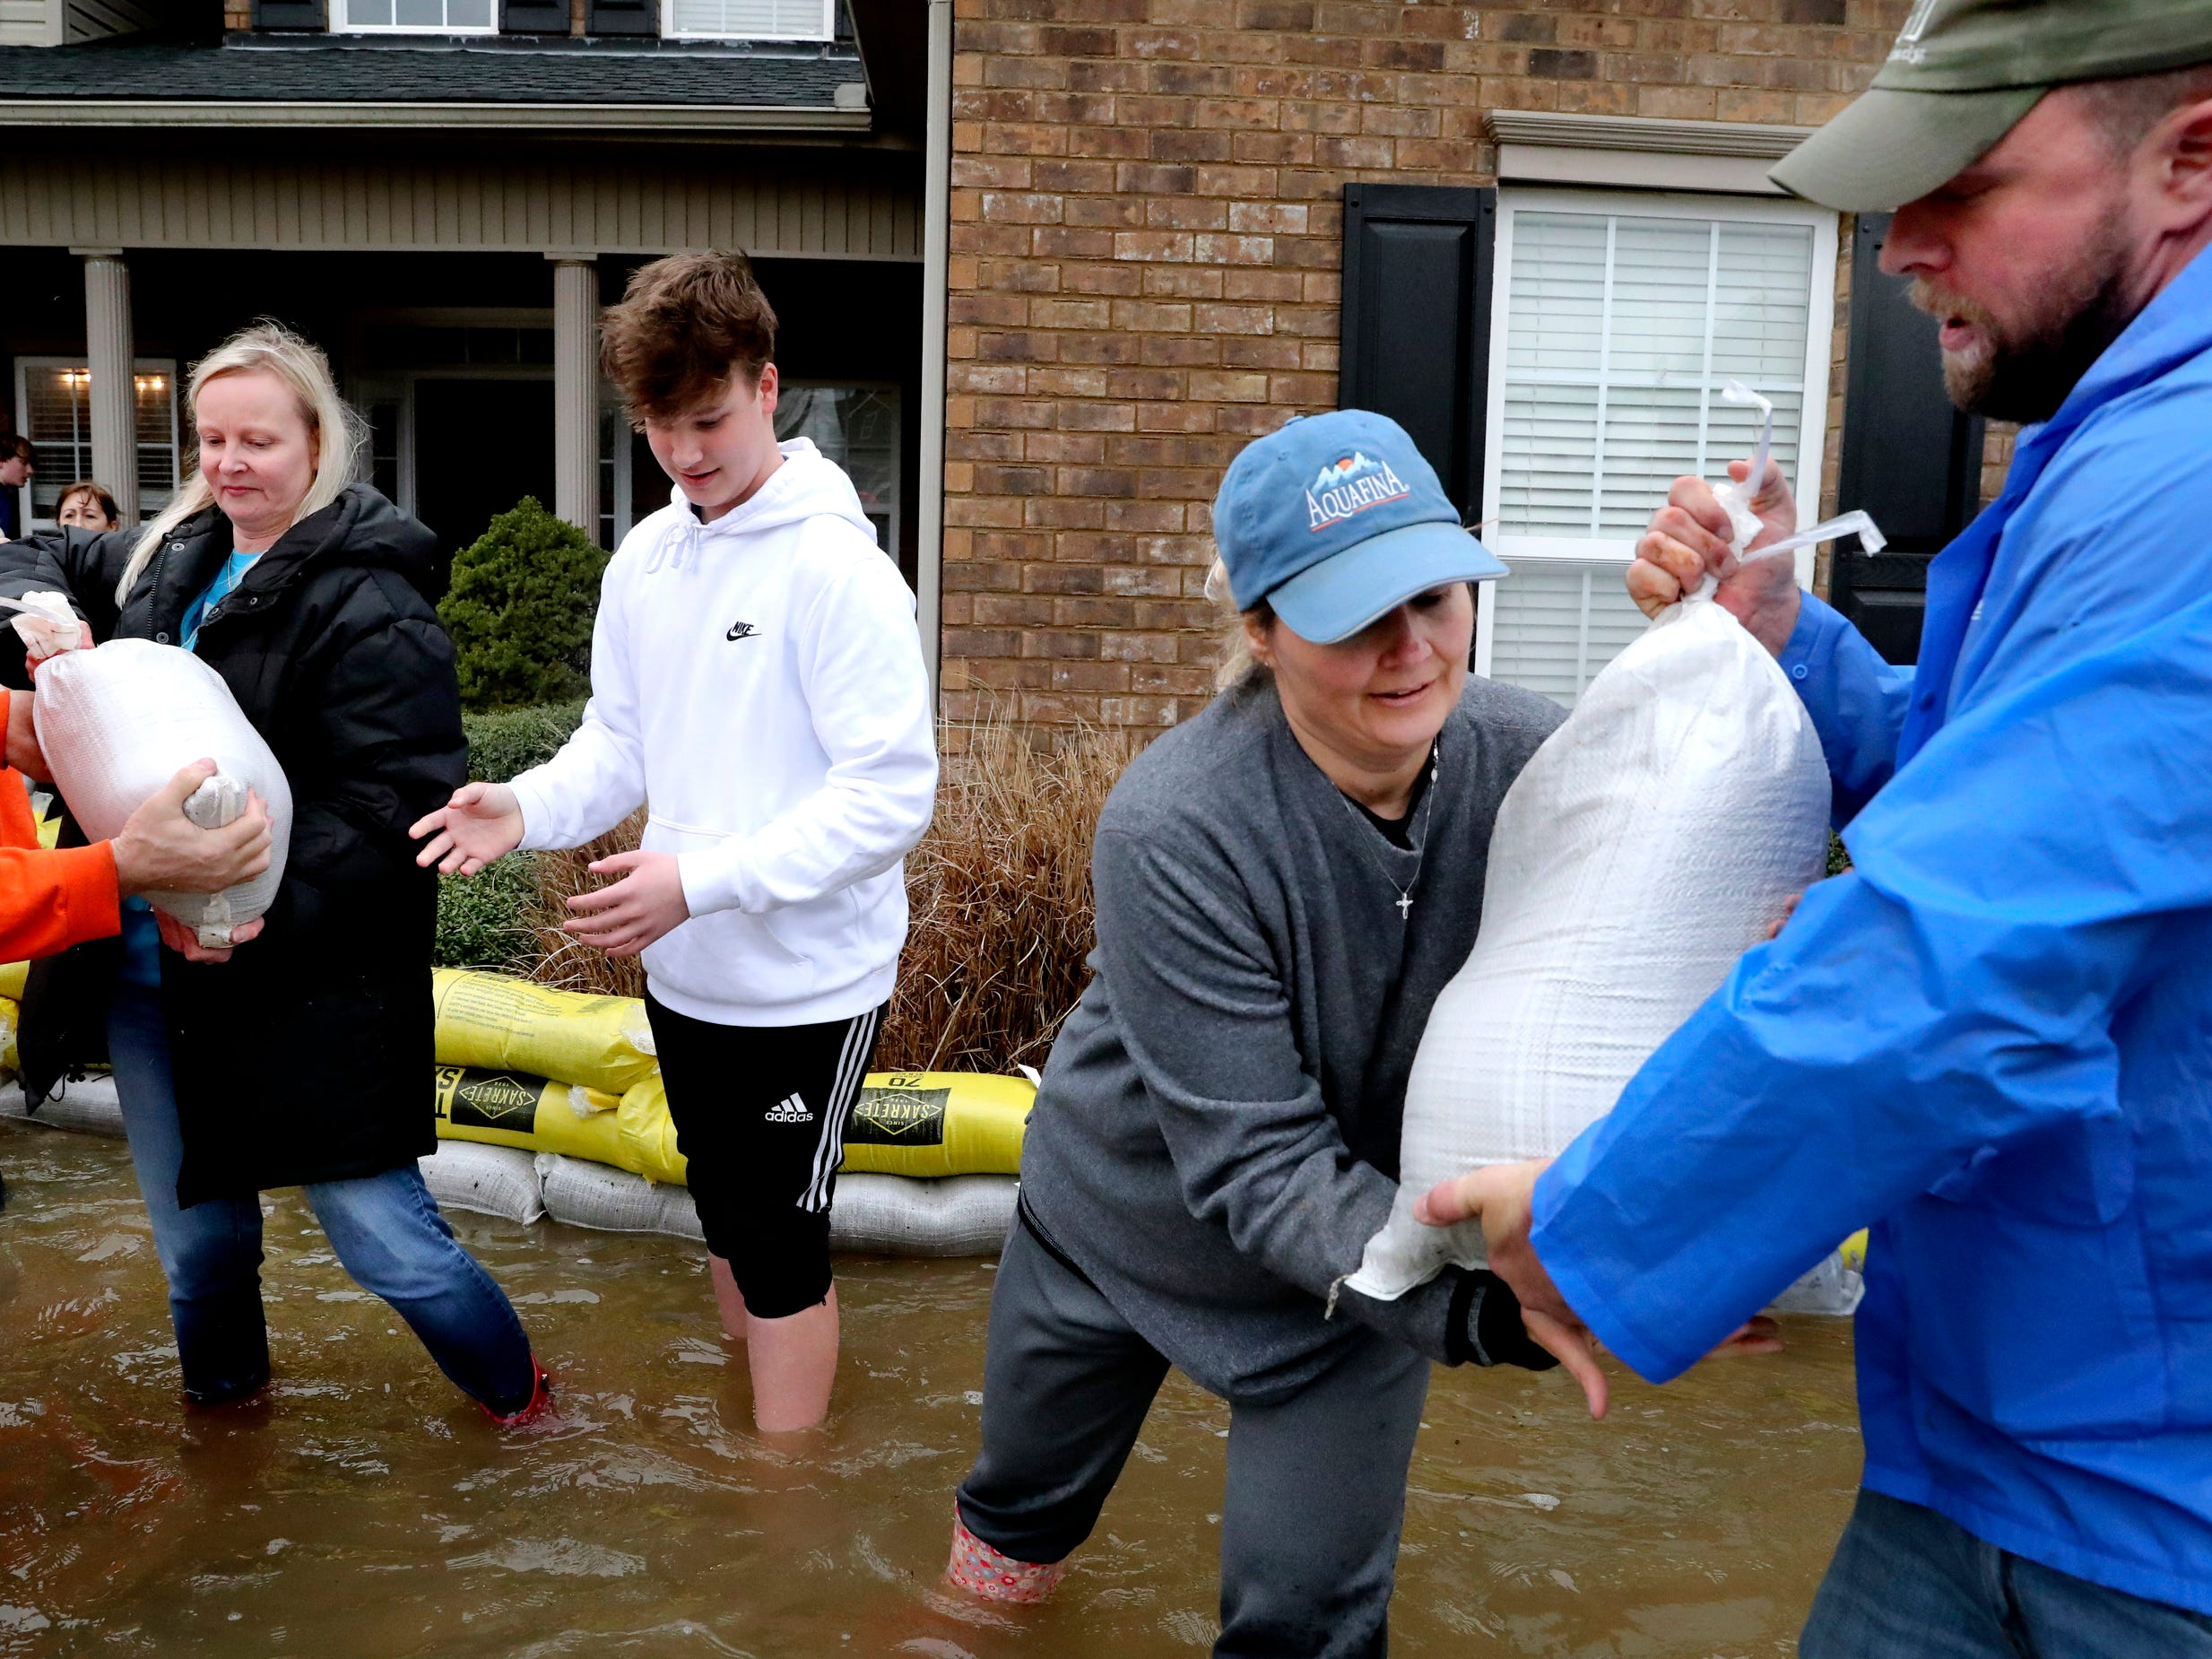 (L to R) Katja Hedding, left, Oliver Hedding, 14, and Teresa Garrison, and Michael Derby stack sand bags to keep their neighbor's house safe from flood waters on Steelson Way in Murfreesboro, on Saturday, Feb. 23, 2019.